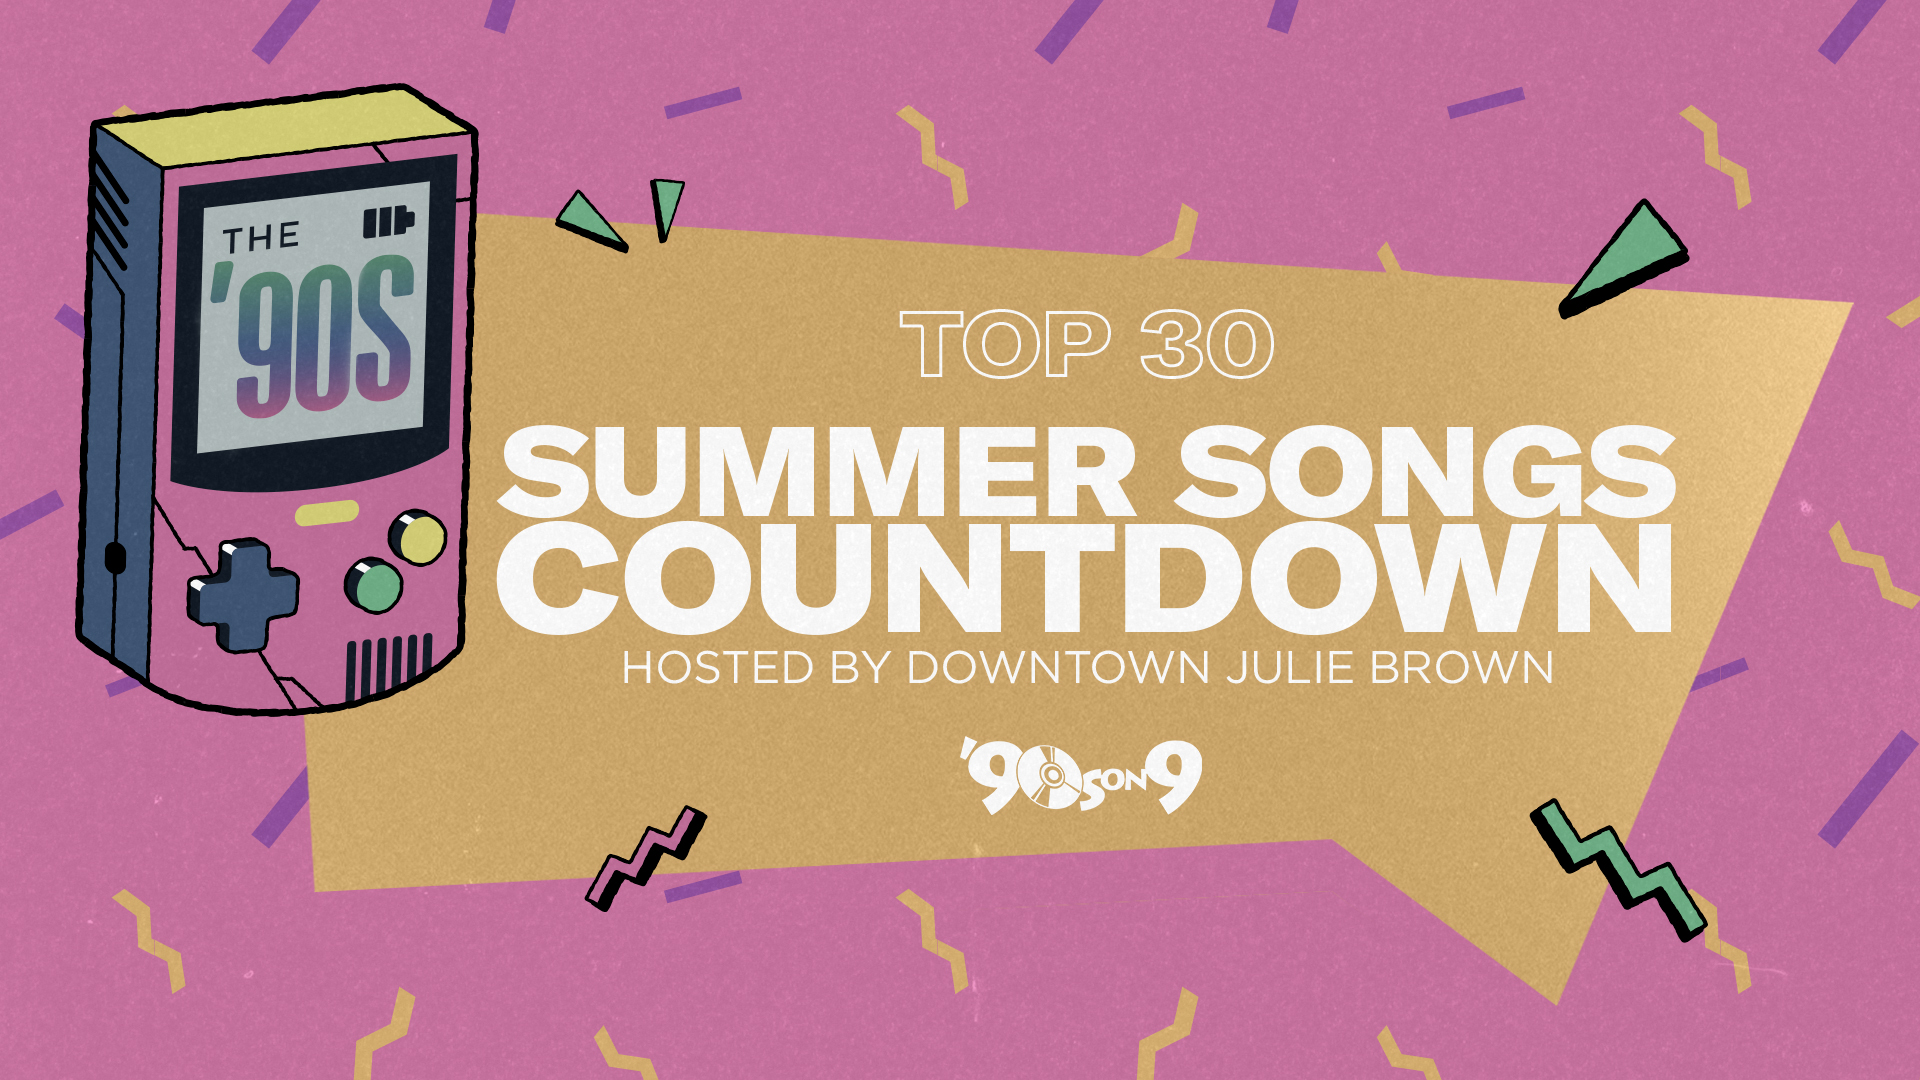 Vote for your favorite '90s summer songs, then hear them counted down